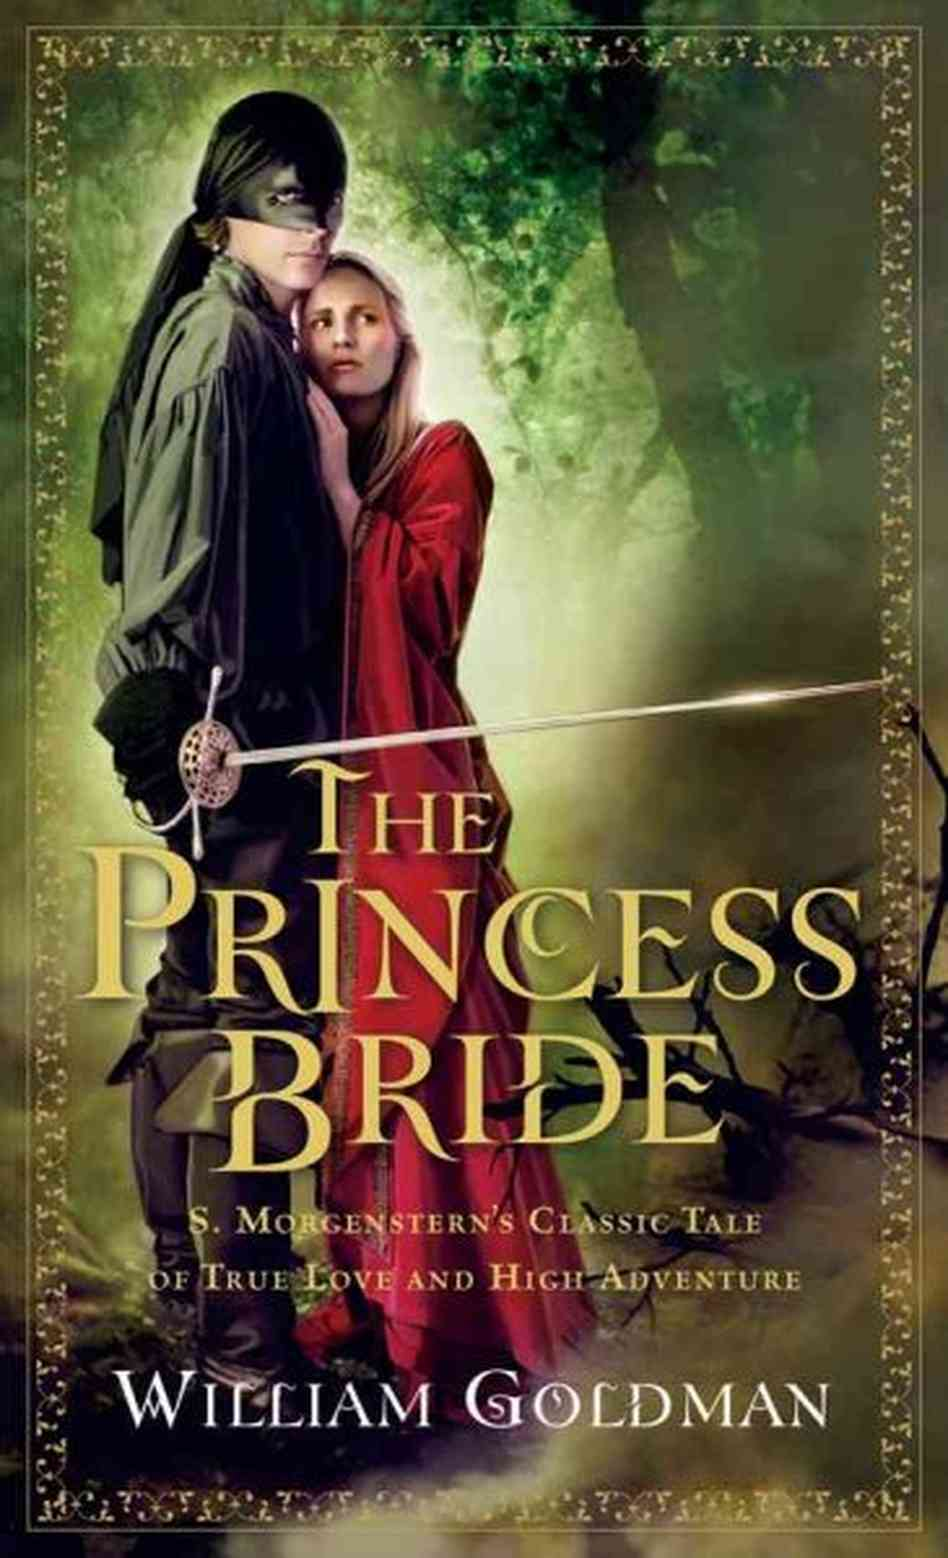 The Princess Bride, William Goldman